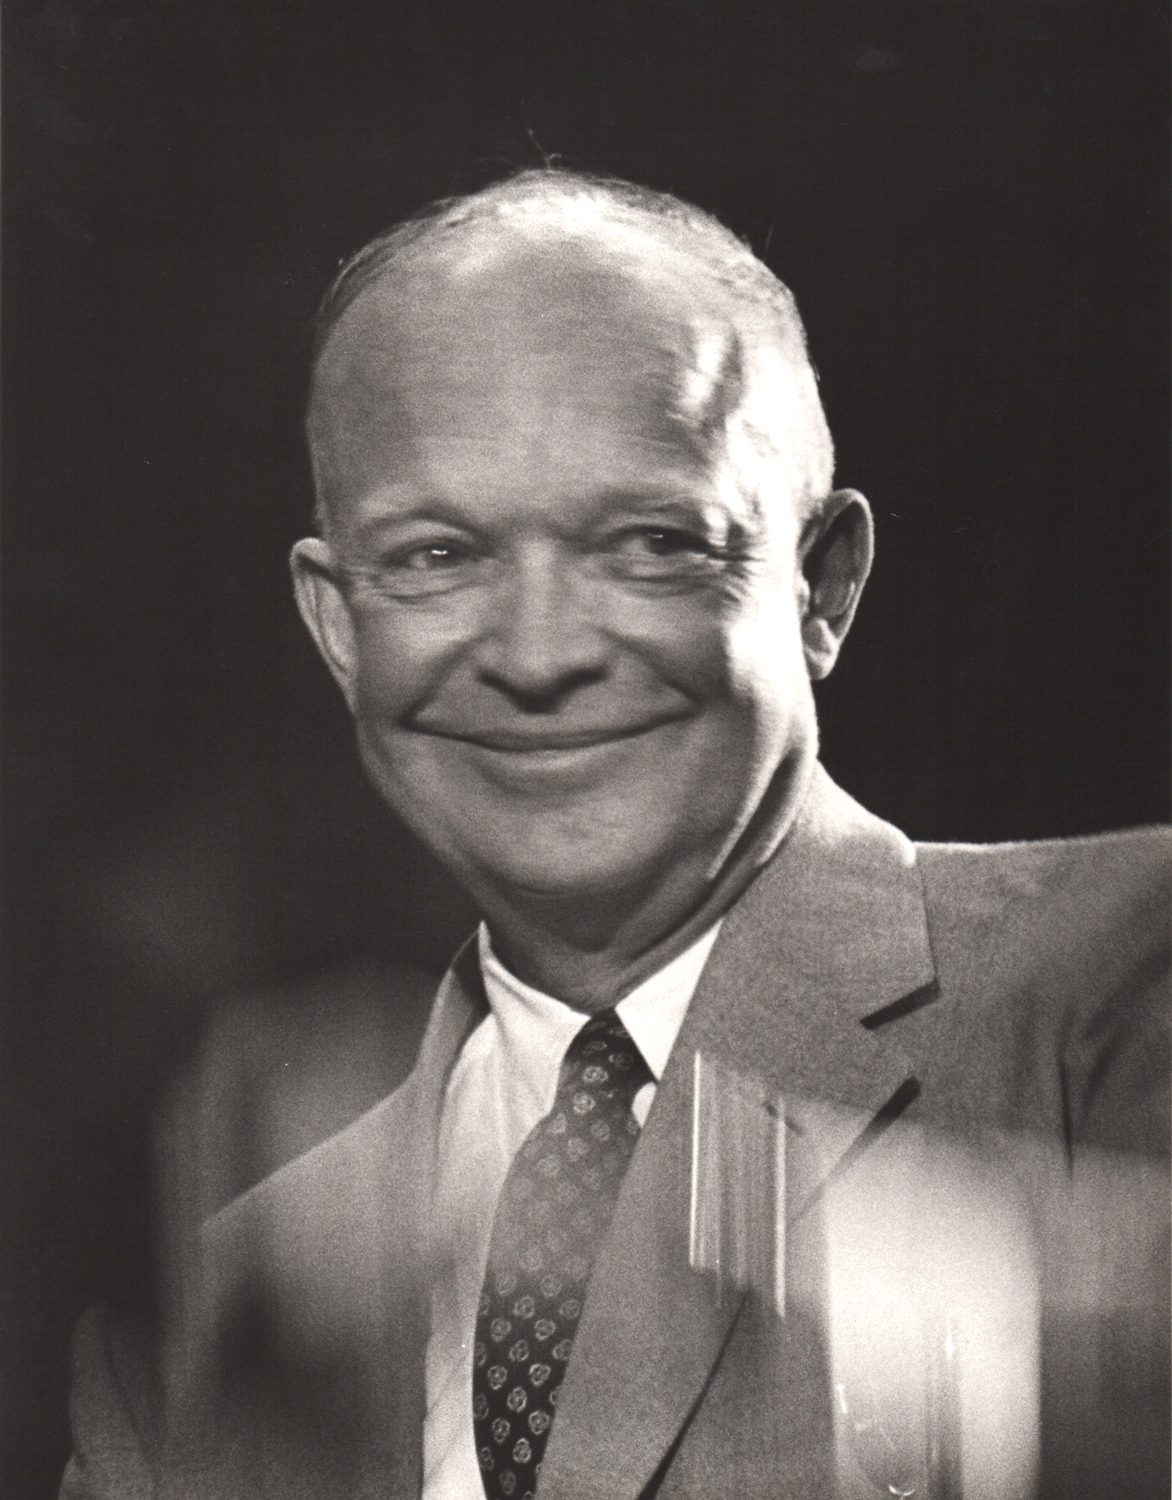 President Dwight D. Eisenhower